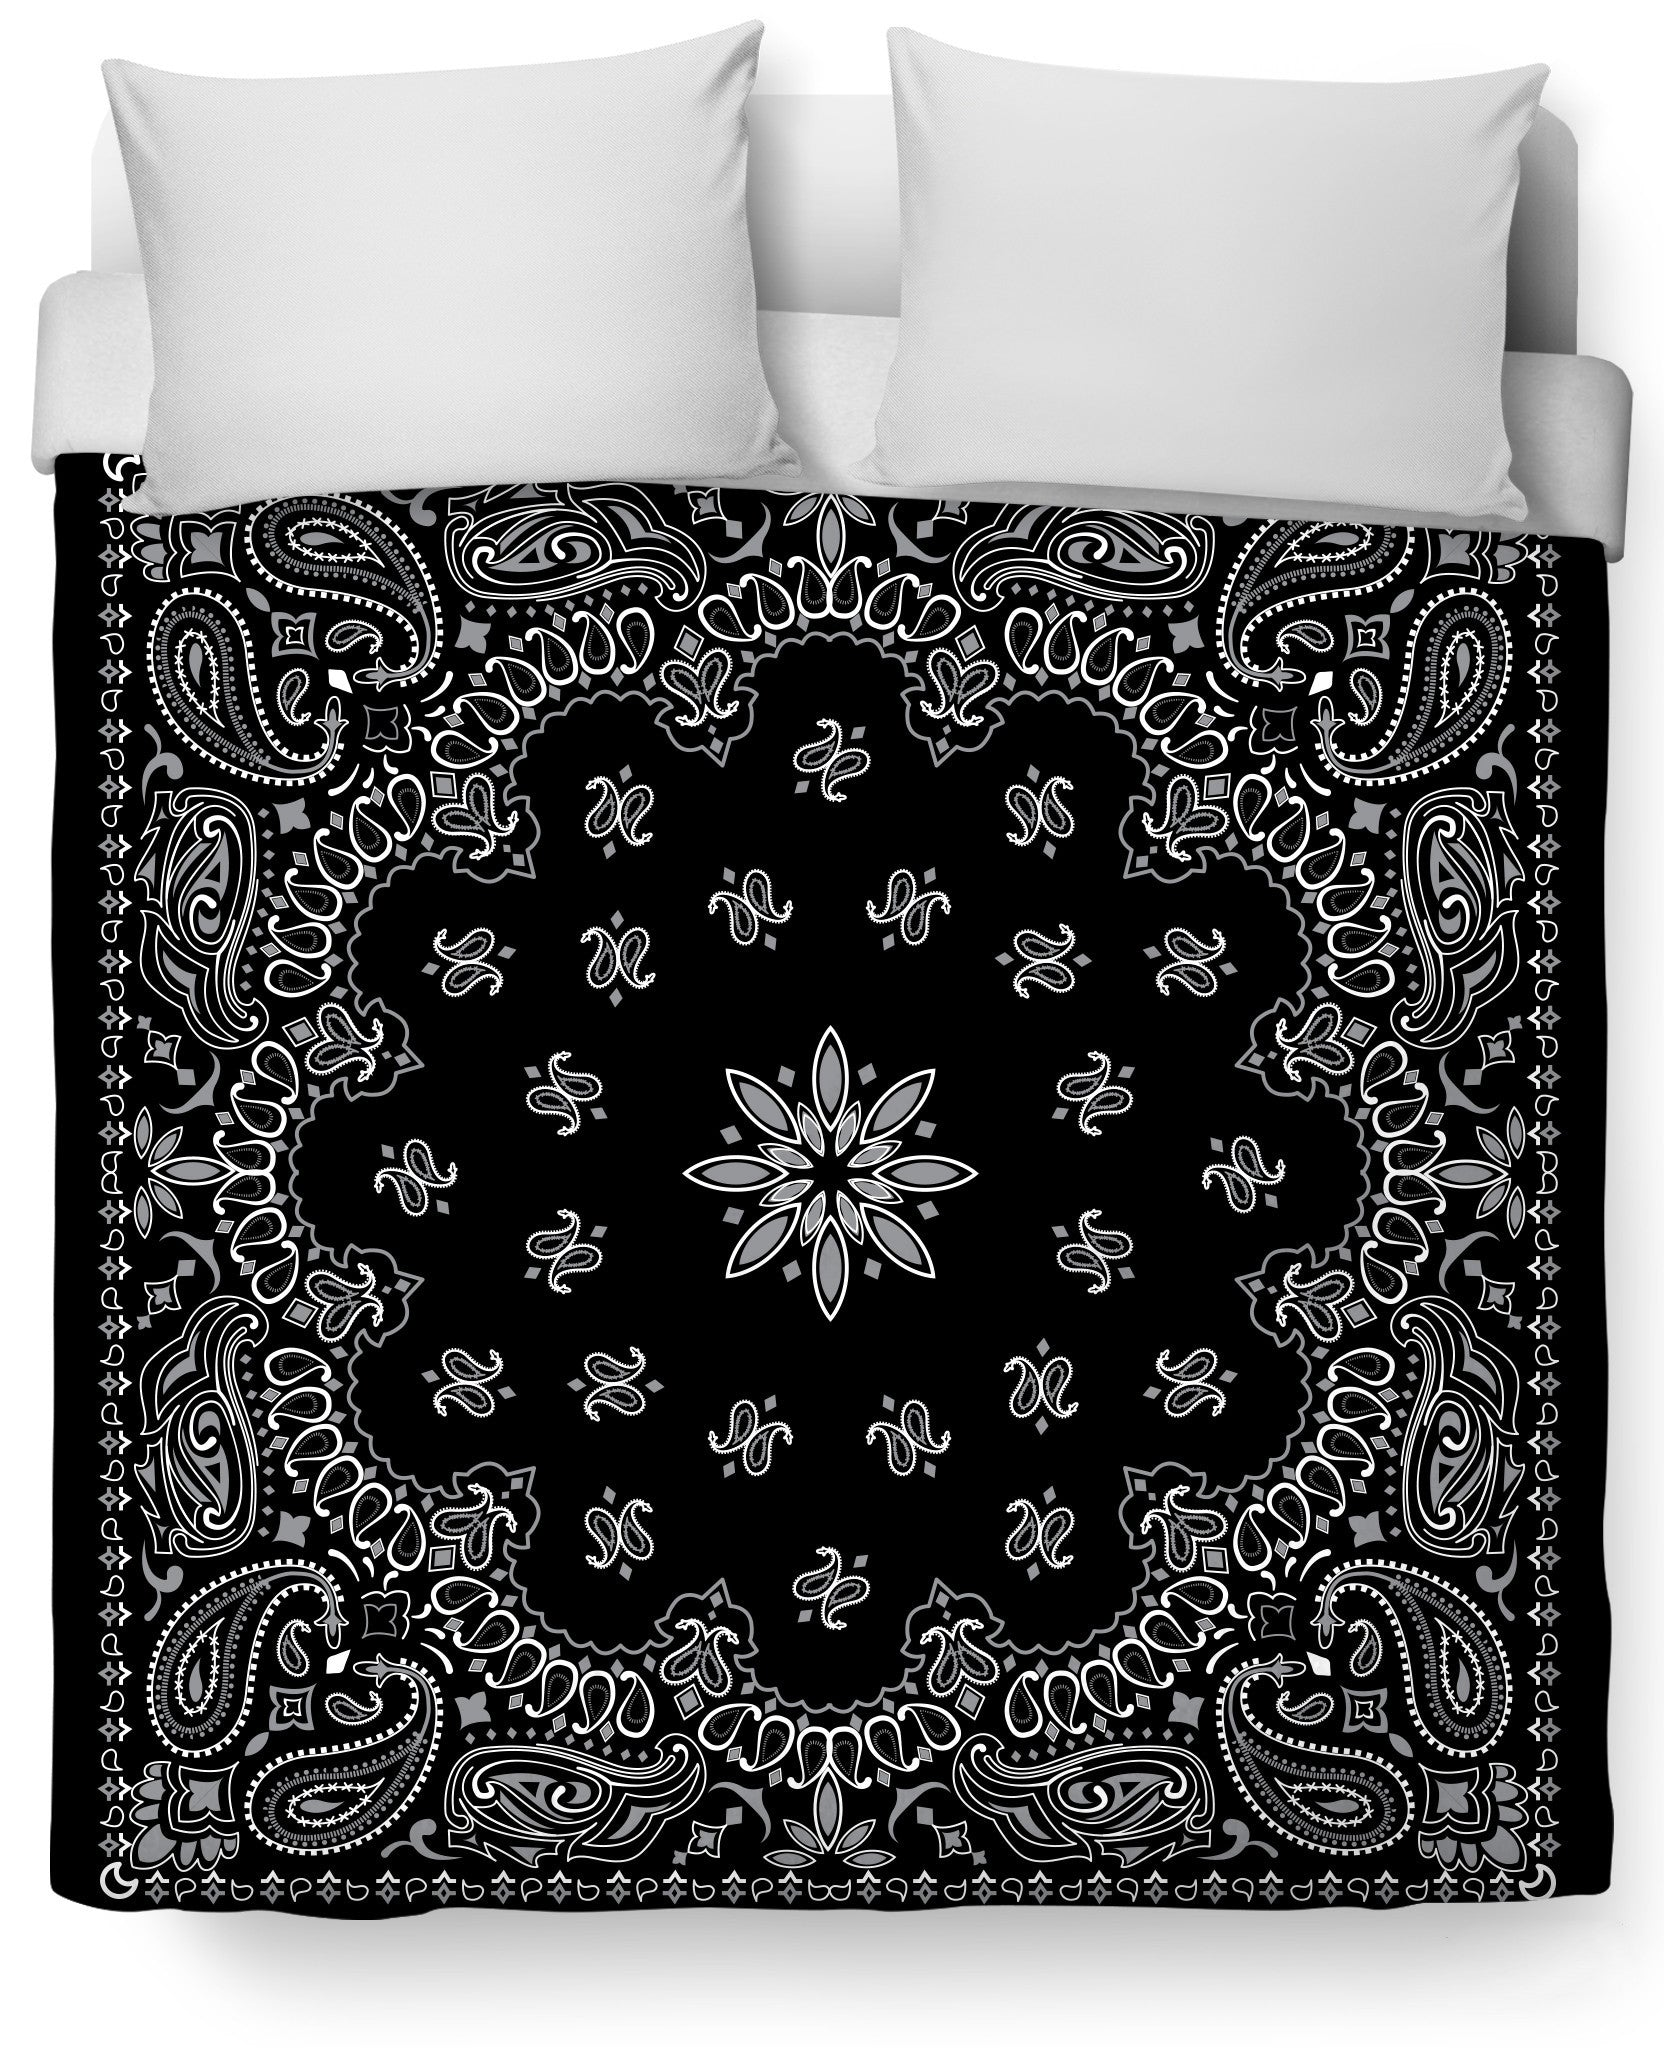 Bandana Duvet Cover - TShirtsRUS.co